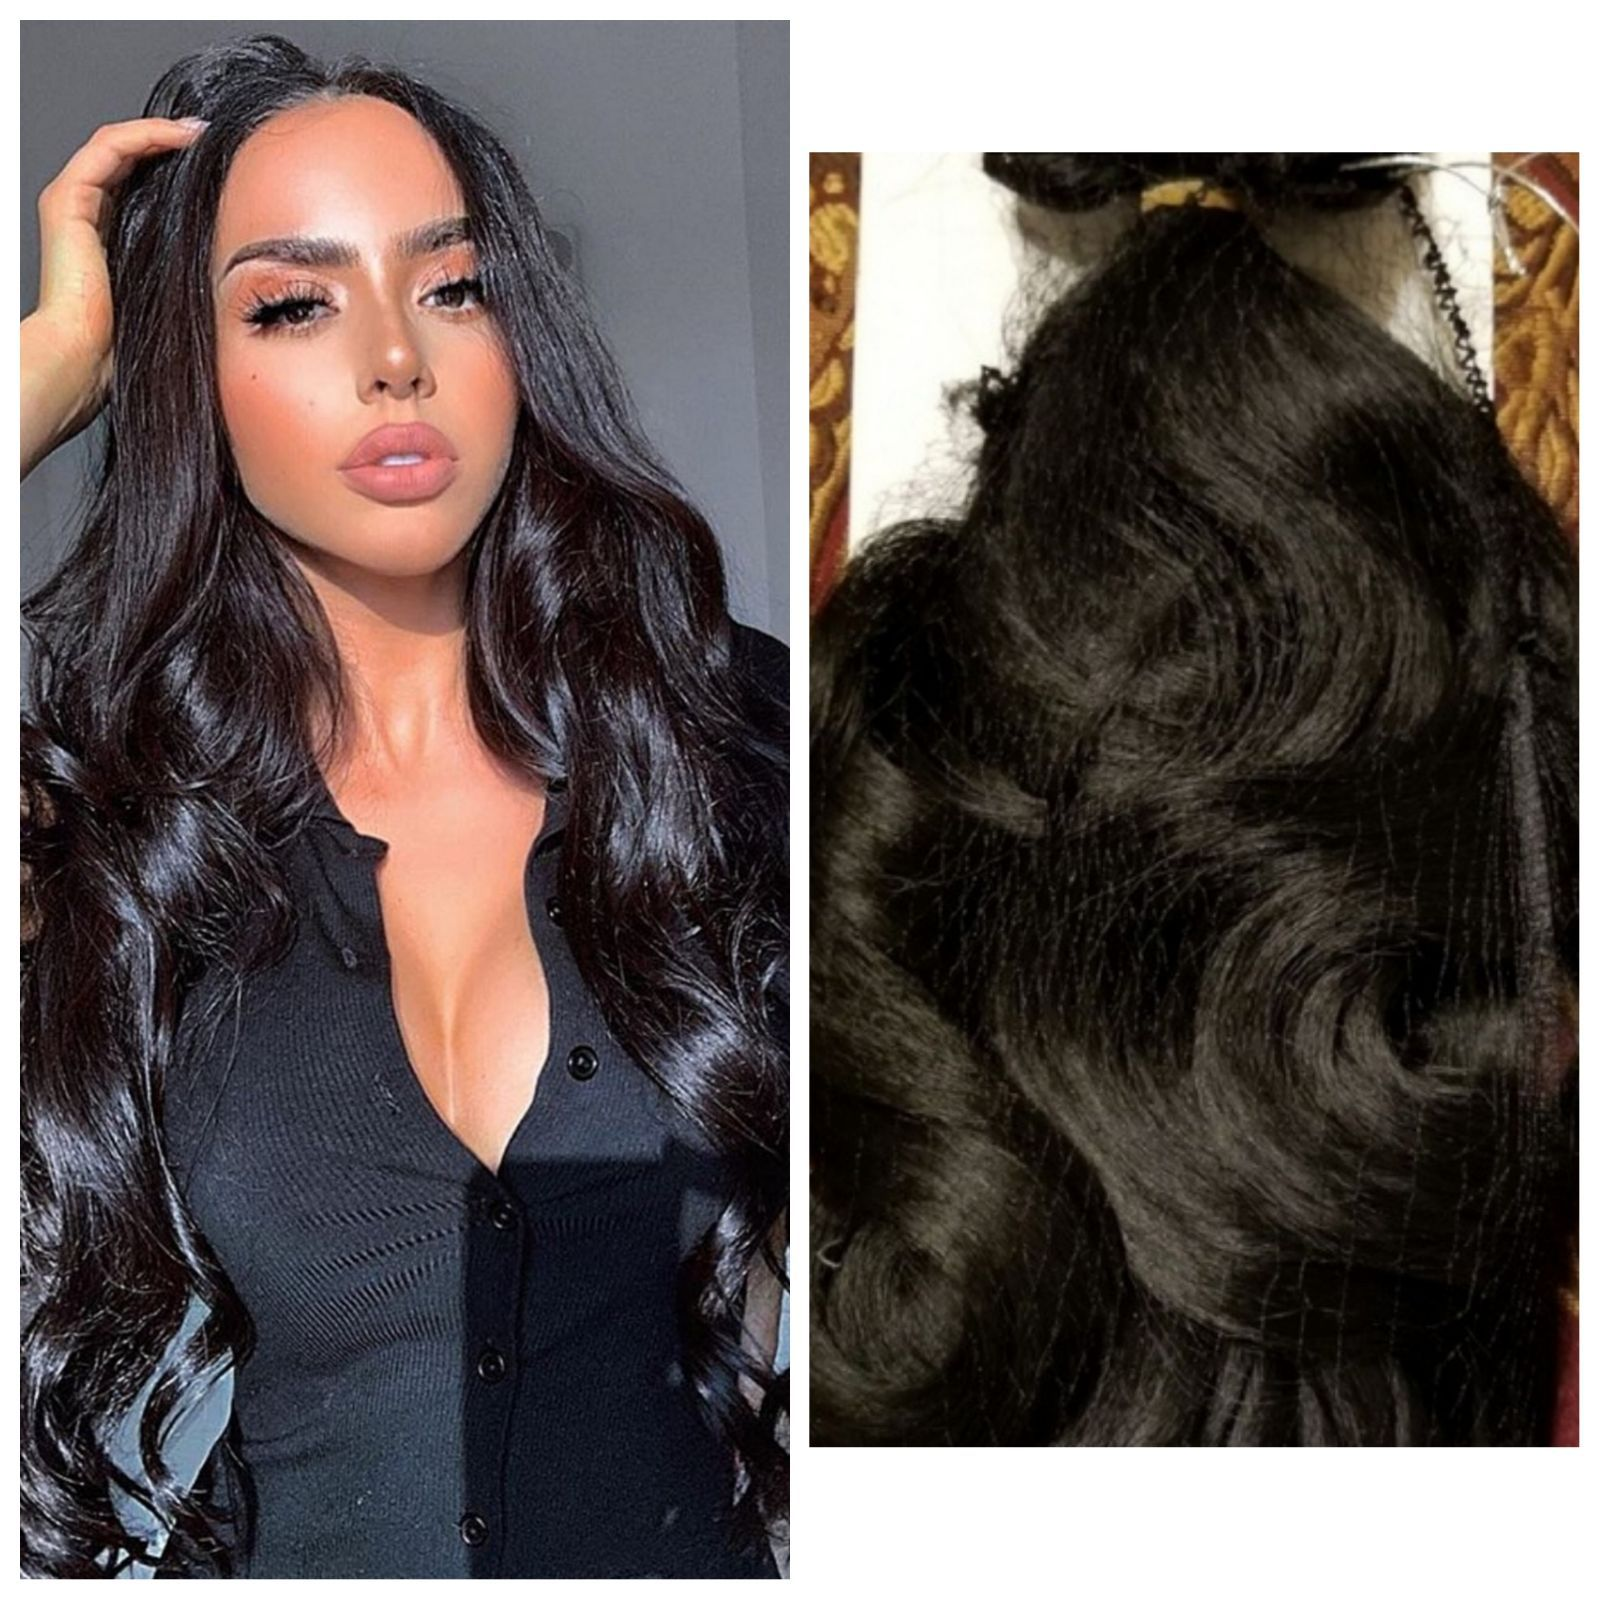 49++ Black hairstyles with clip in extensions ideas in 2021